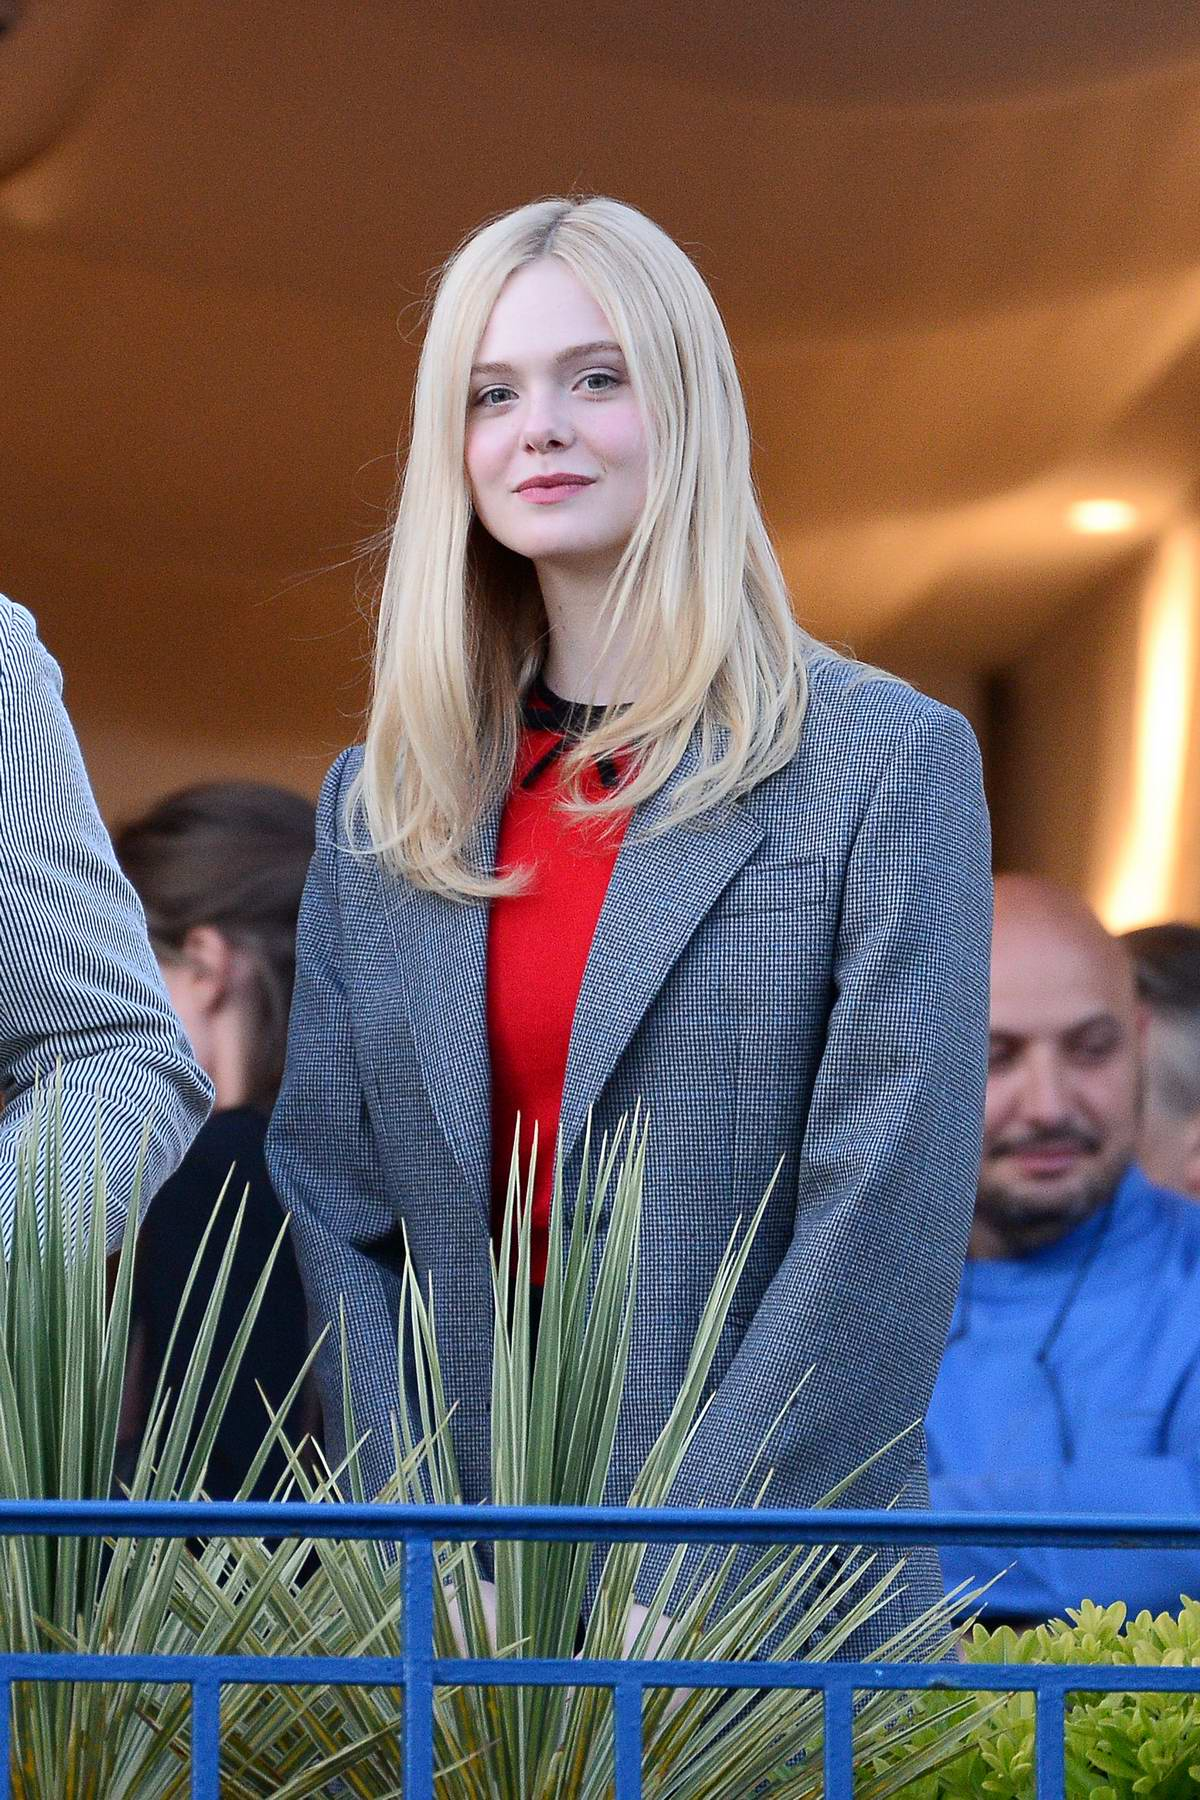 Elle Fanning seen on the balcony of the Martinez Hotel on the eve of the opening of the 72nd Cannes Film Festival in Cannes, France